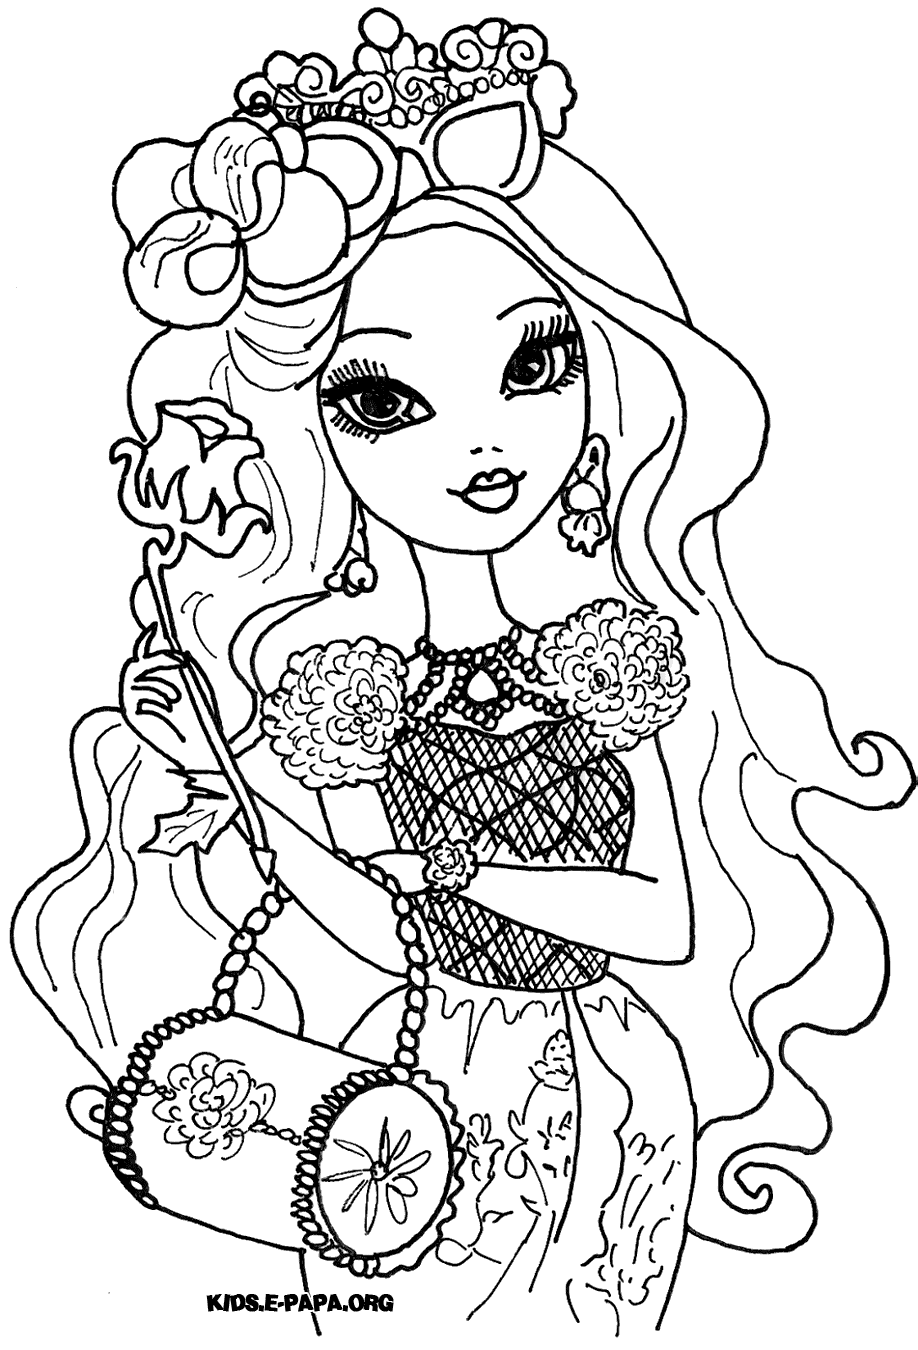 M 229 Larbilder F 246 R Barn Coloring Pages For After High Babies